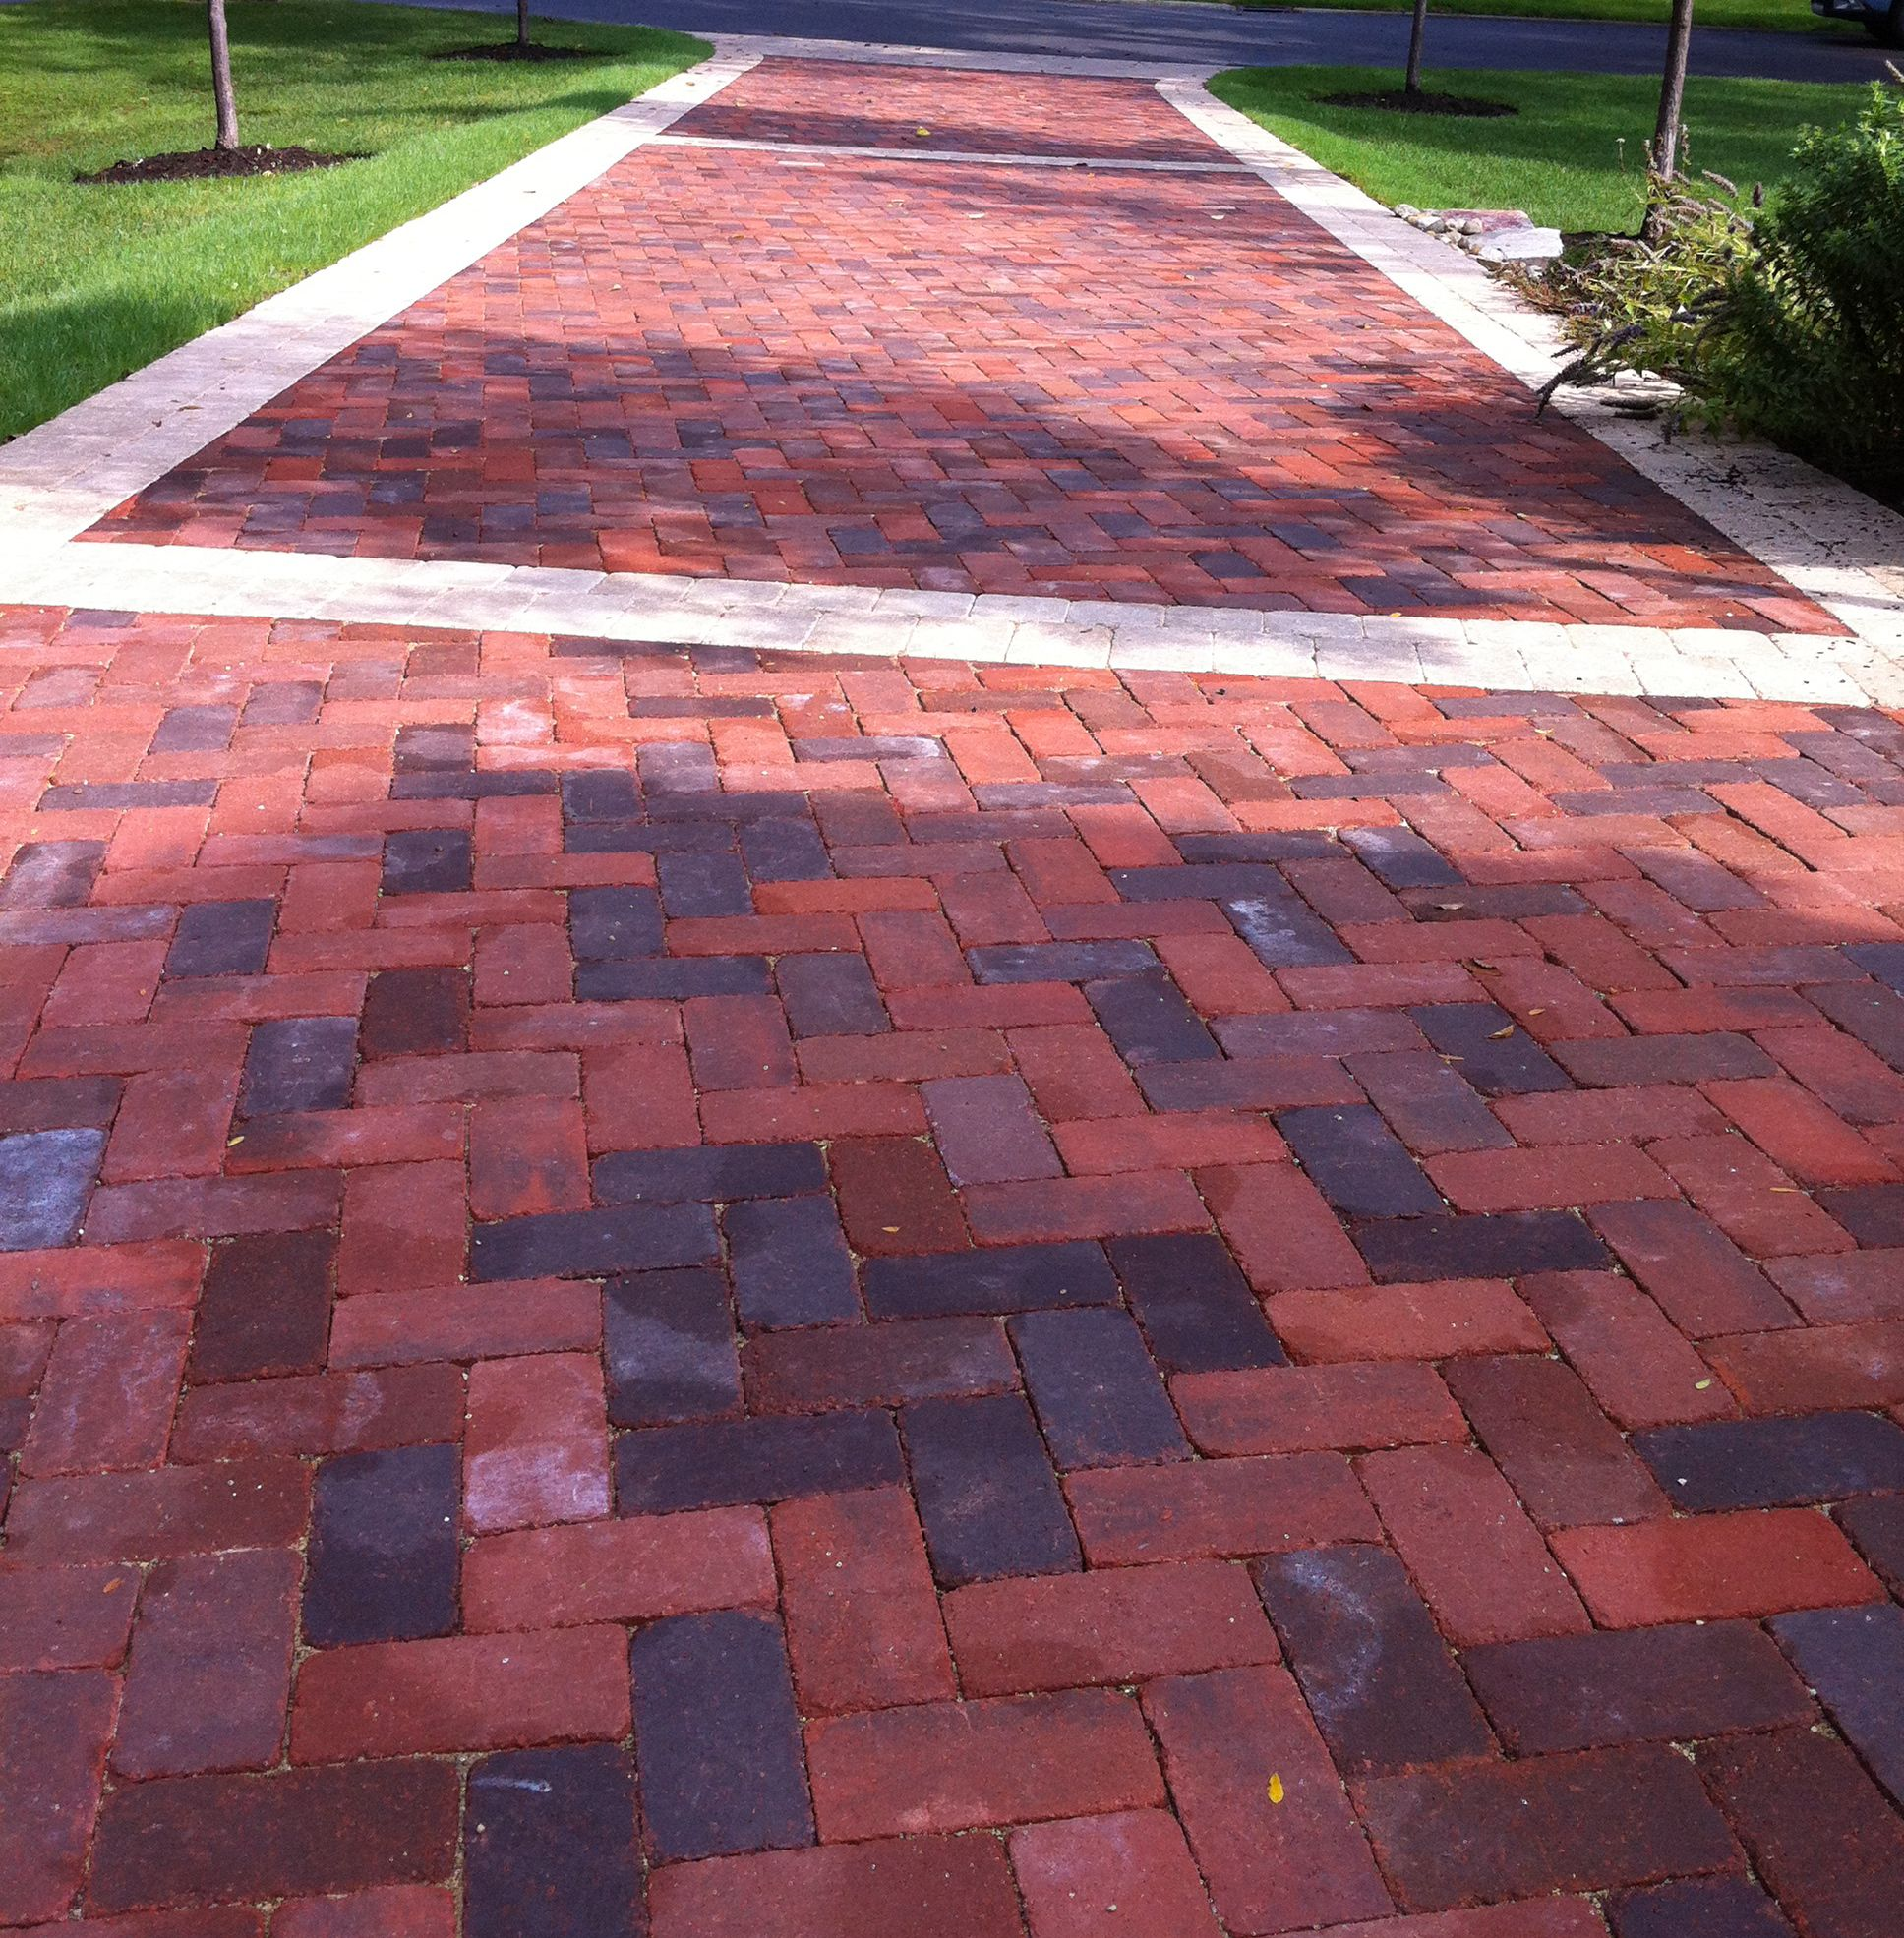 large driveways are beautiful with brick or stone